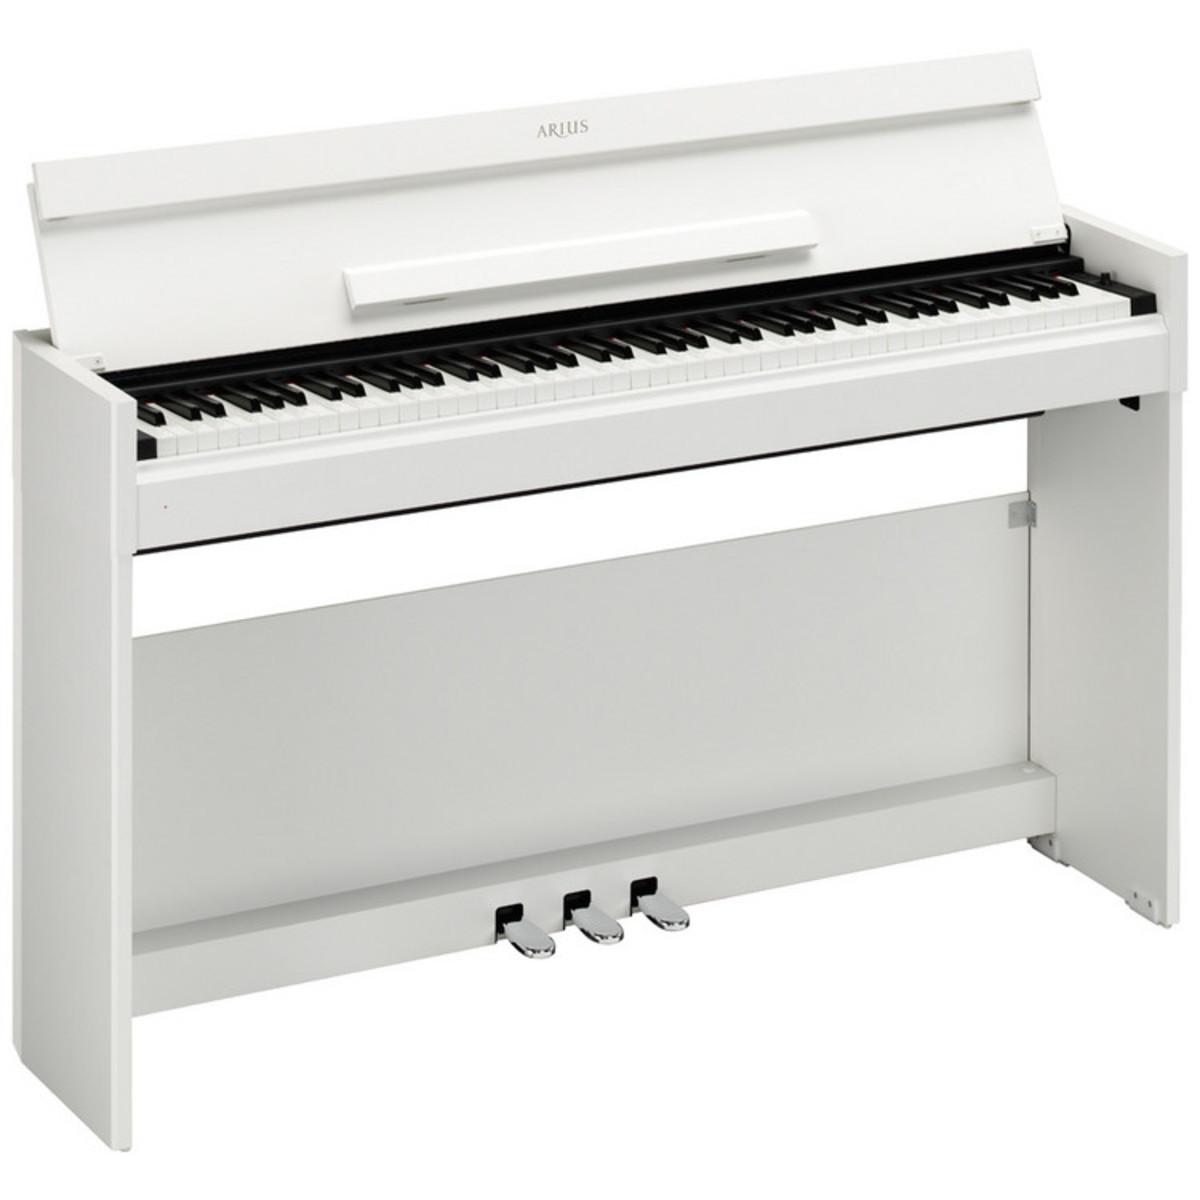 disc yamaha arius ydps51 digital piano white at gear4music. Black Bedroom Furniture Sets. Home Design Ideas